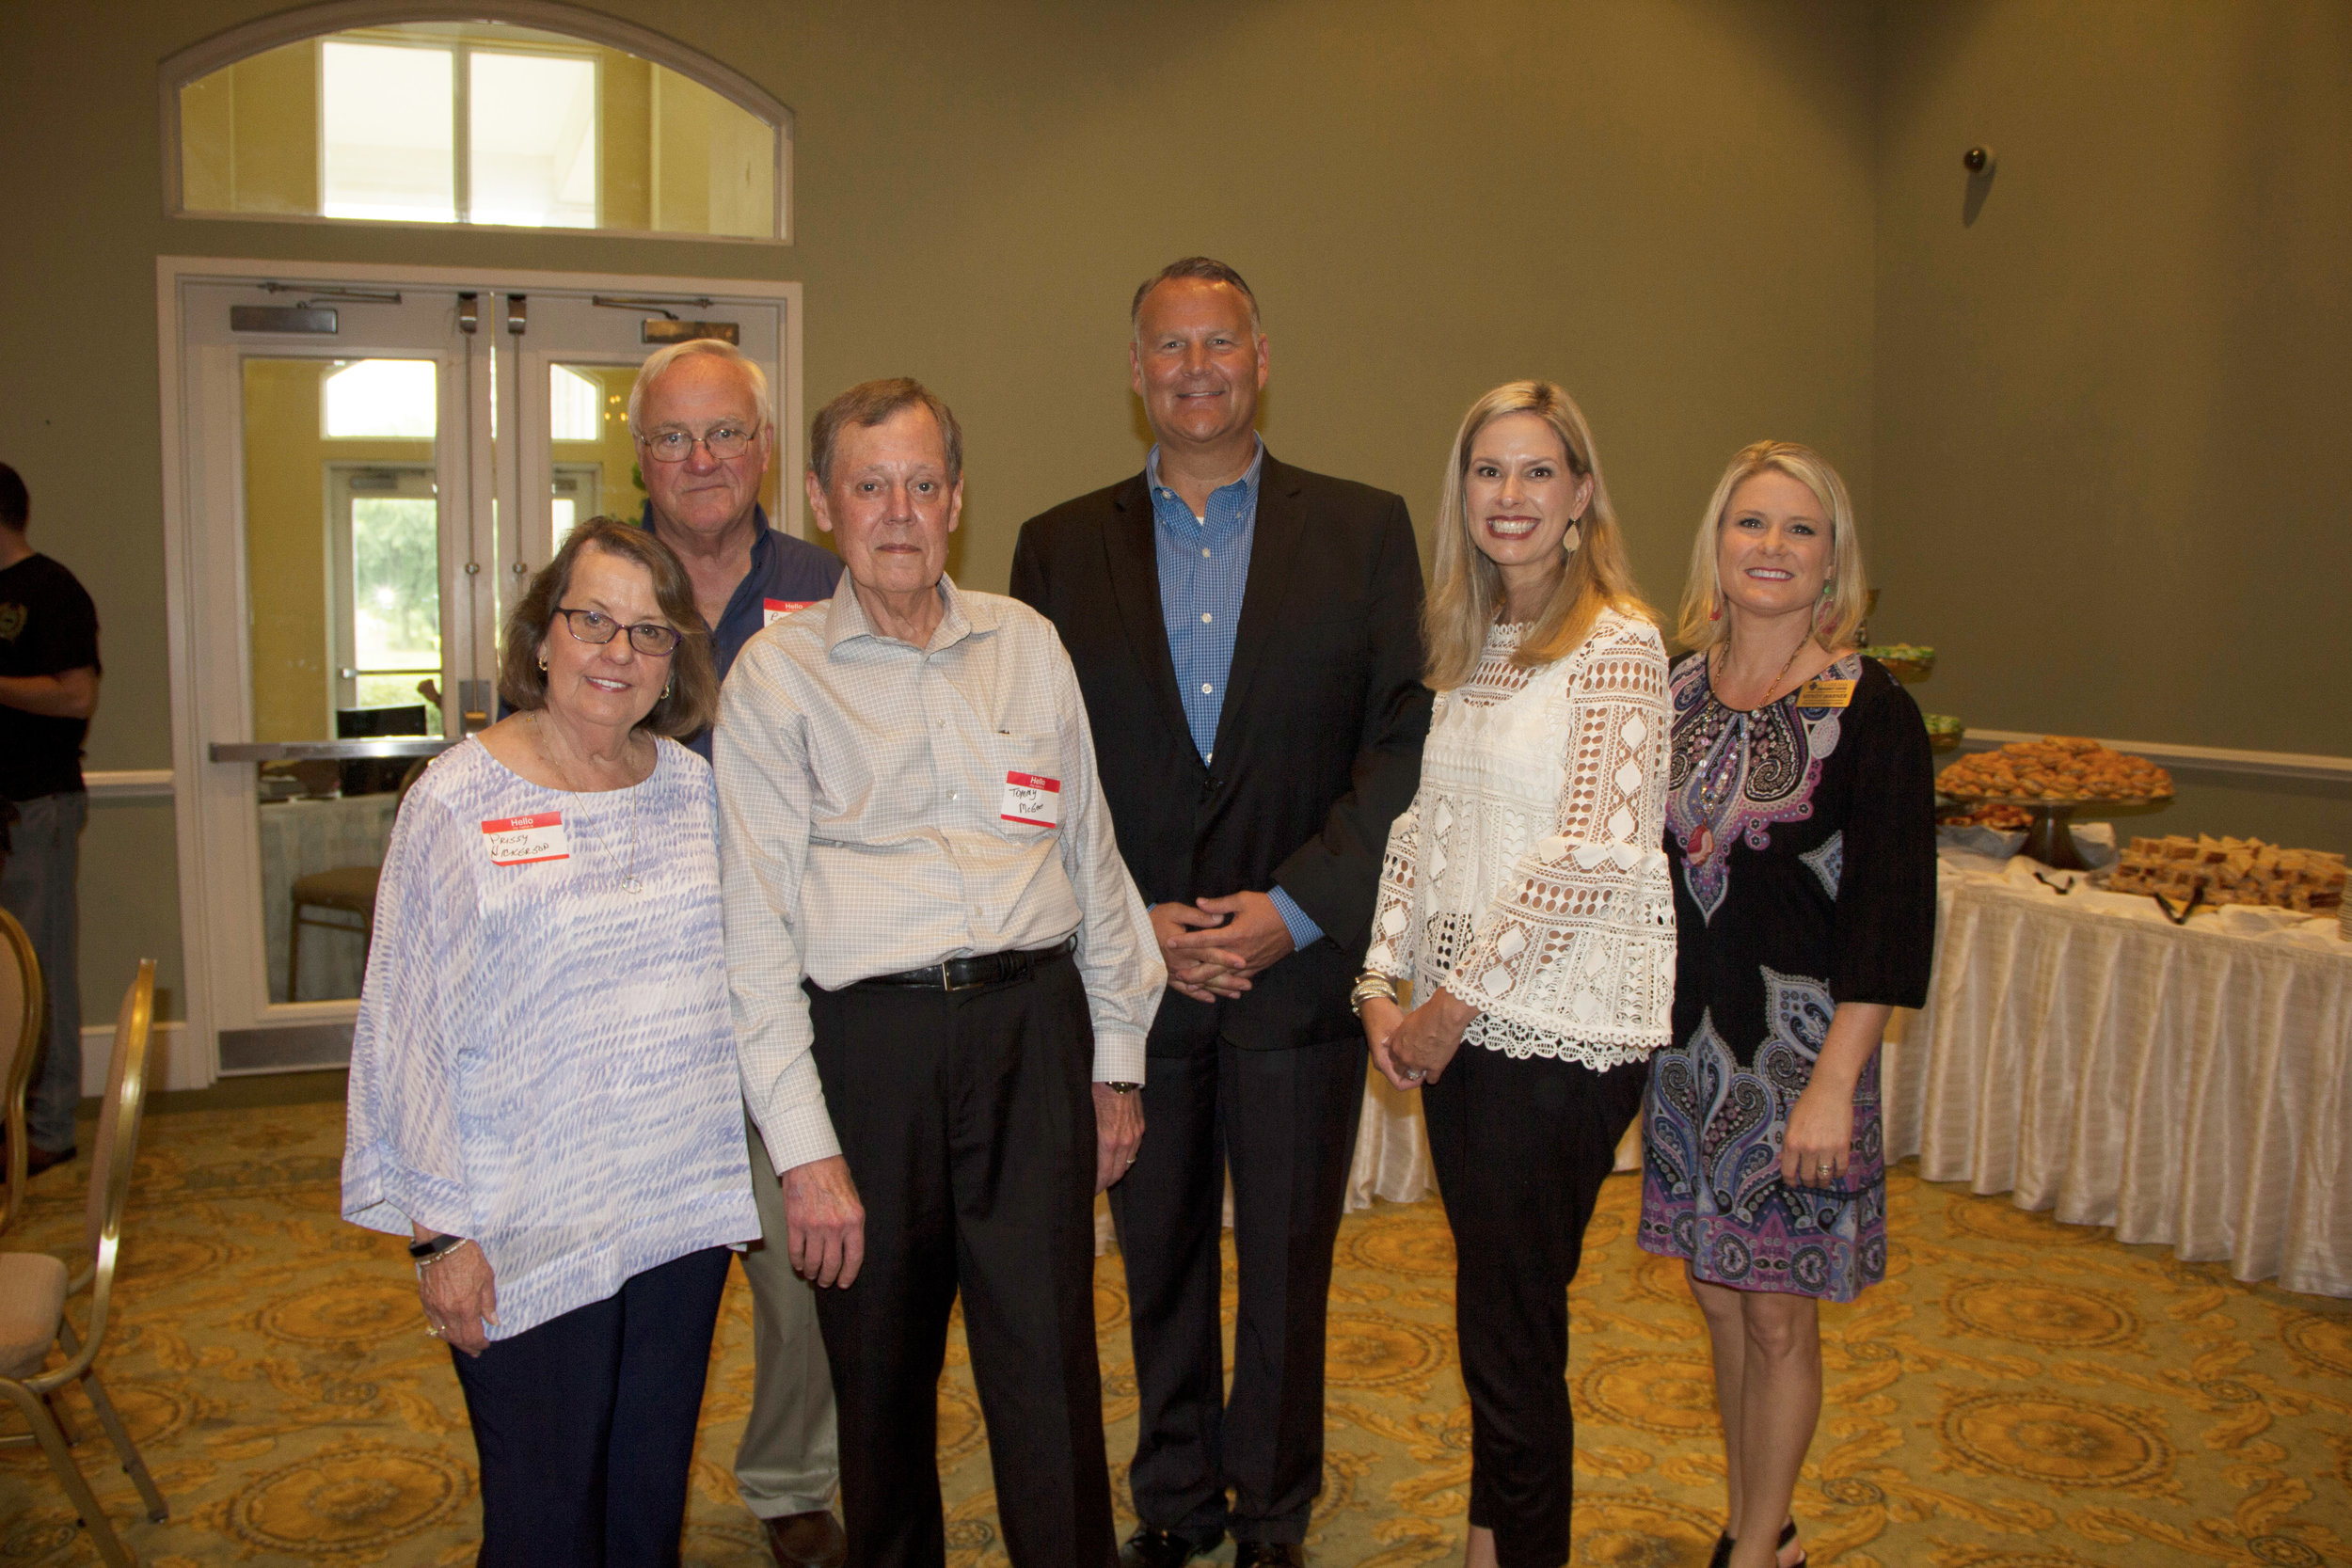 Prissy and Dr. Randy Hickerson, Tommy McGee, Dr. Matt Young, Brooke Marshall and Mendy Warner